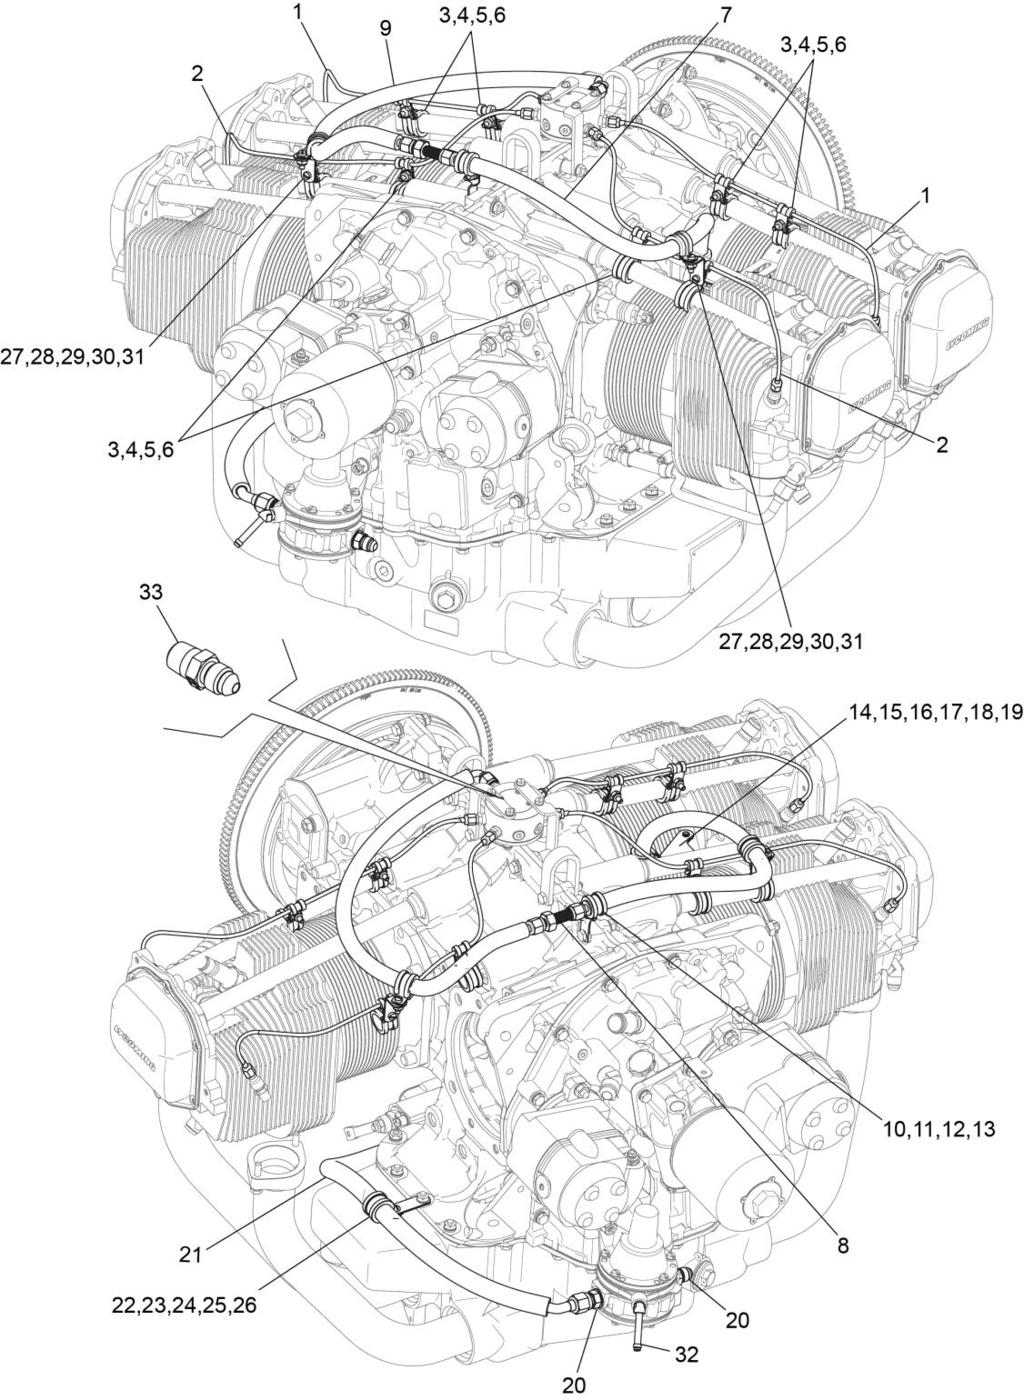 io-360-n1a engine illustrated parts catalog - pdf lycoming oil system diagram oil pump diagram